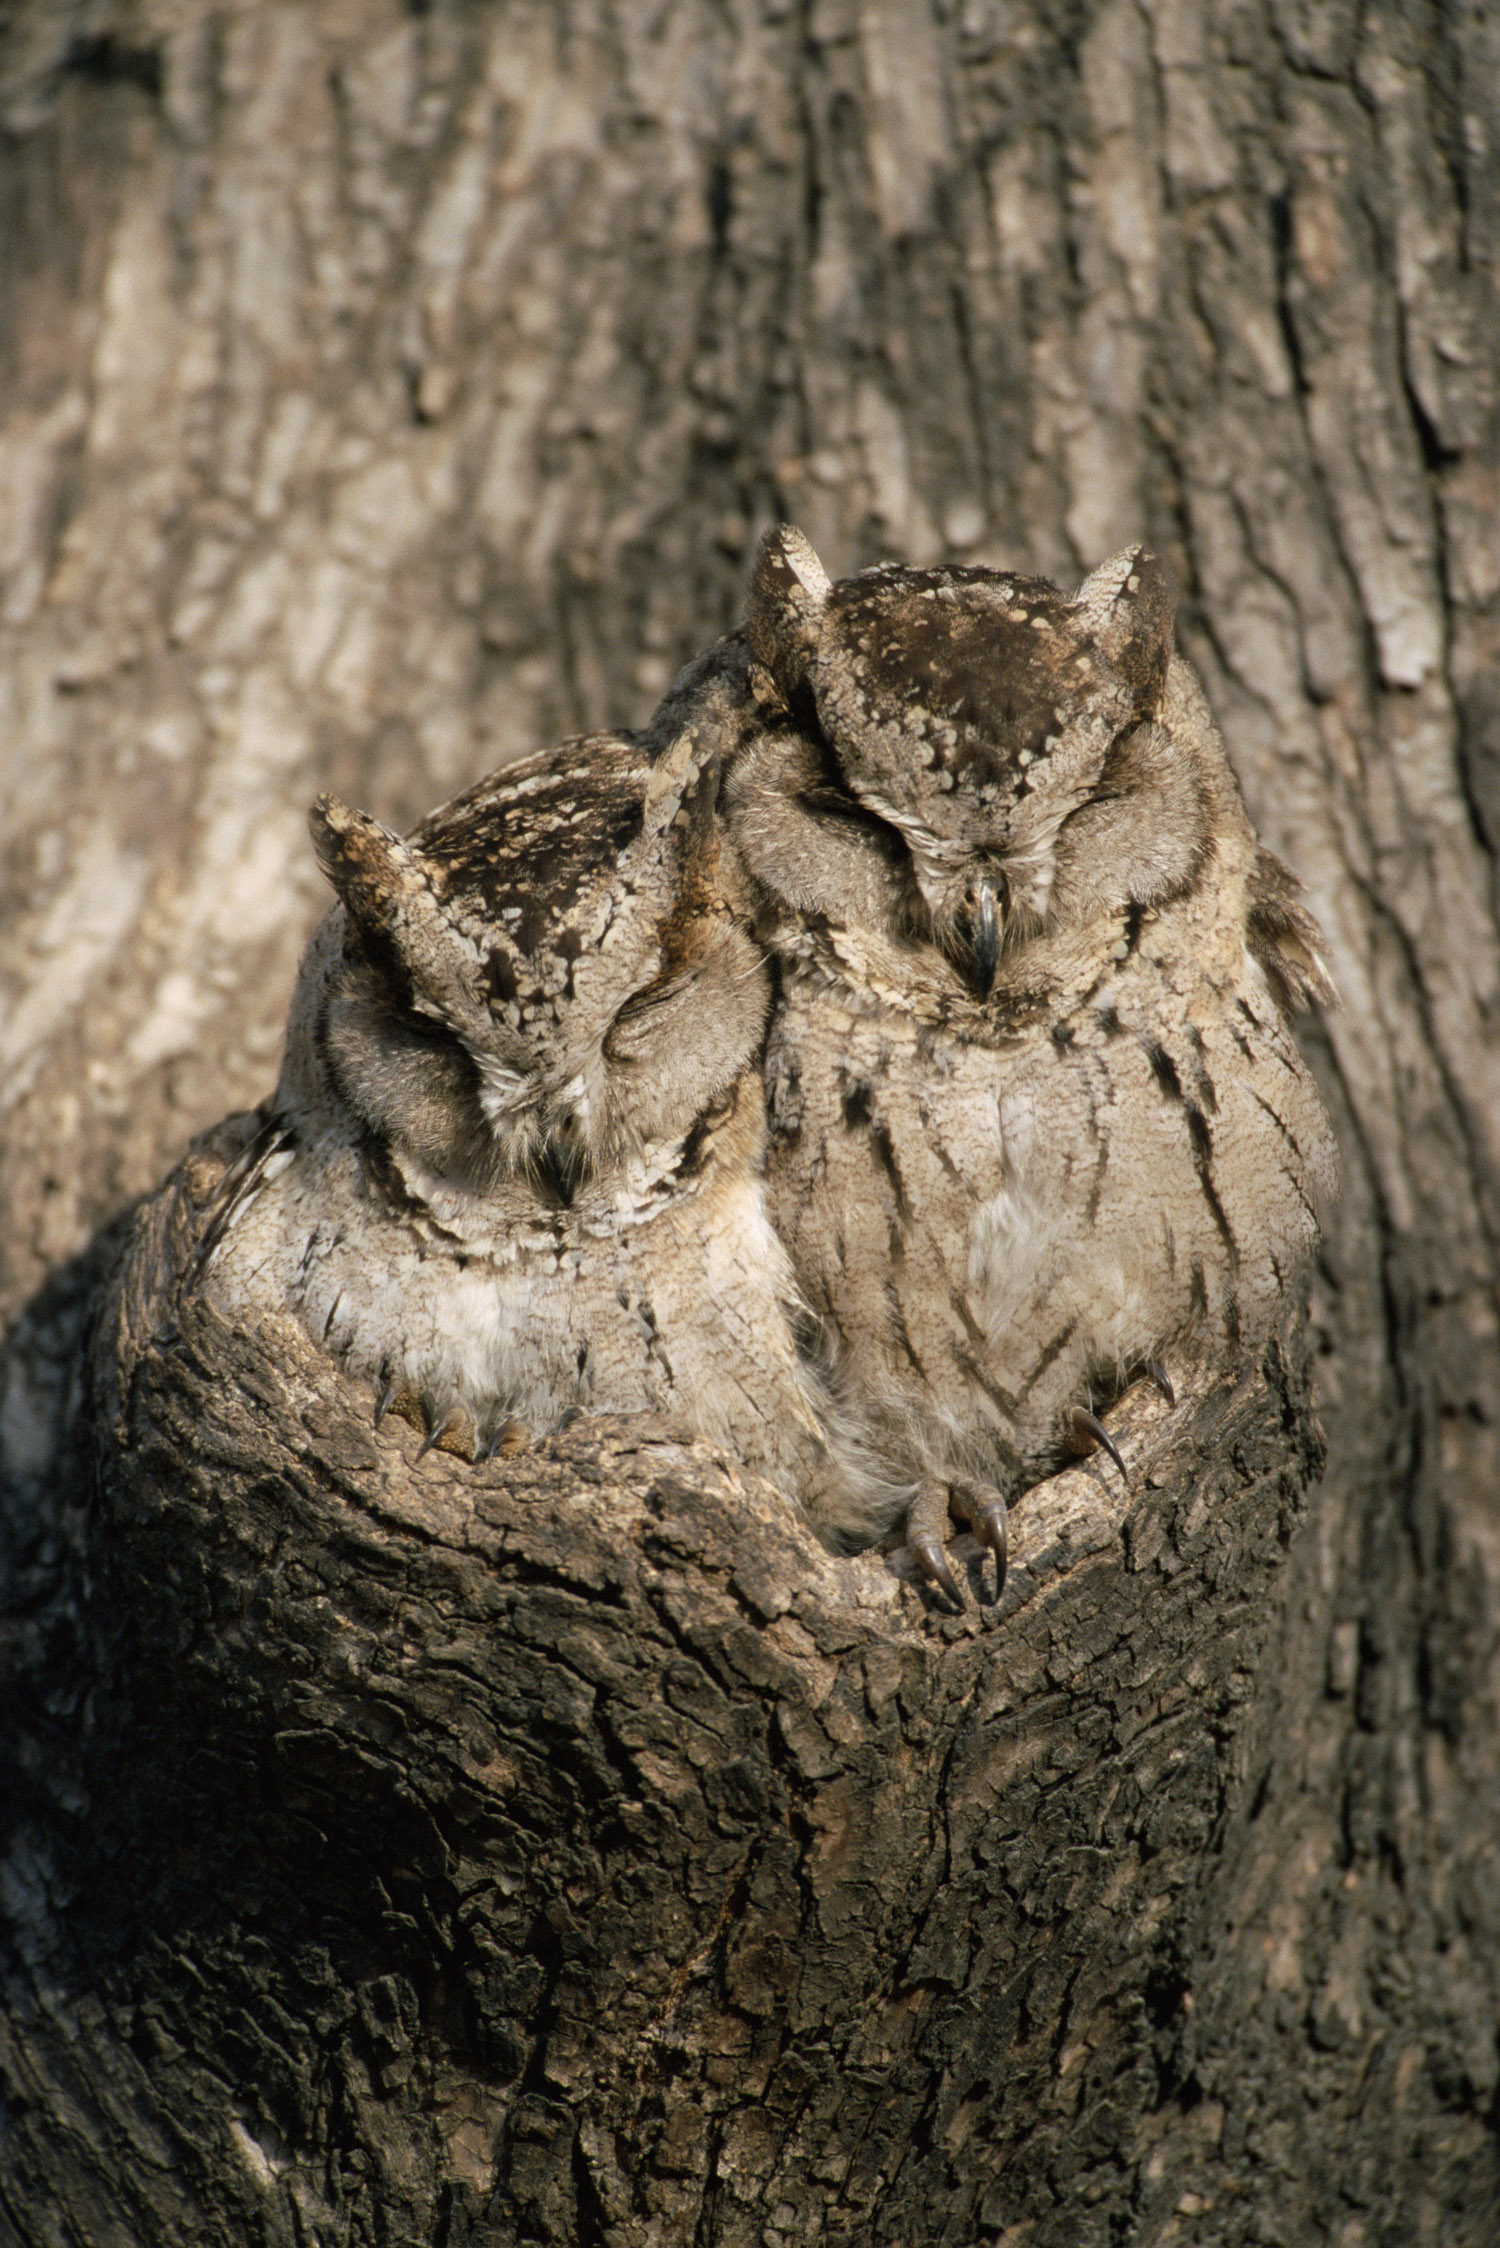 Indian scops owls sleeping in tree hollow, Ranthambhore National Park, Rajasthan, India